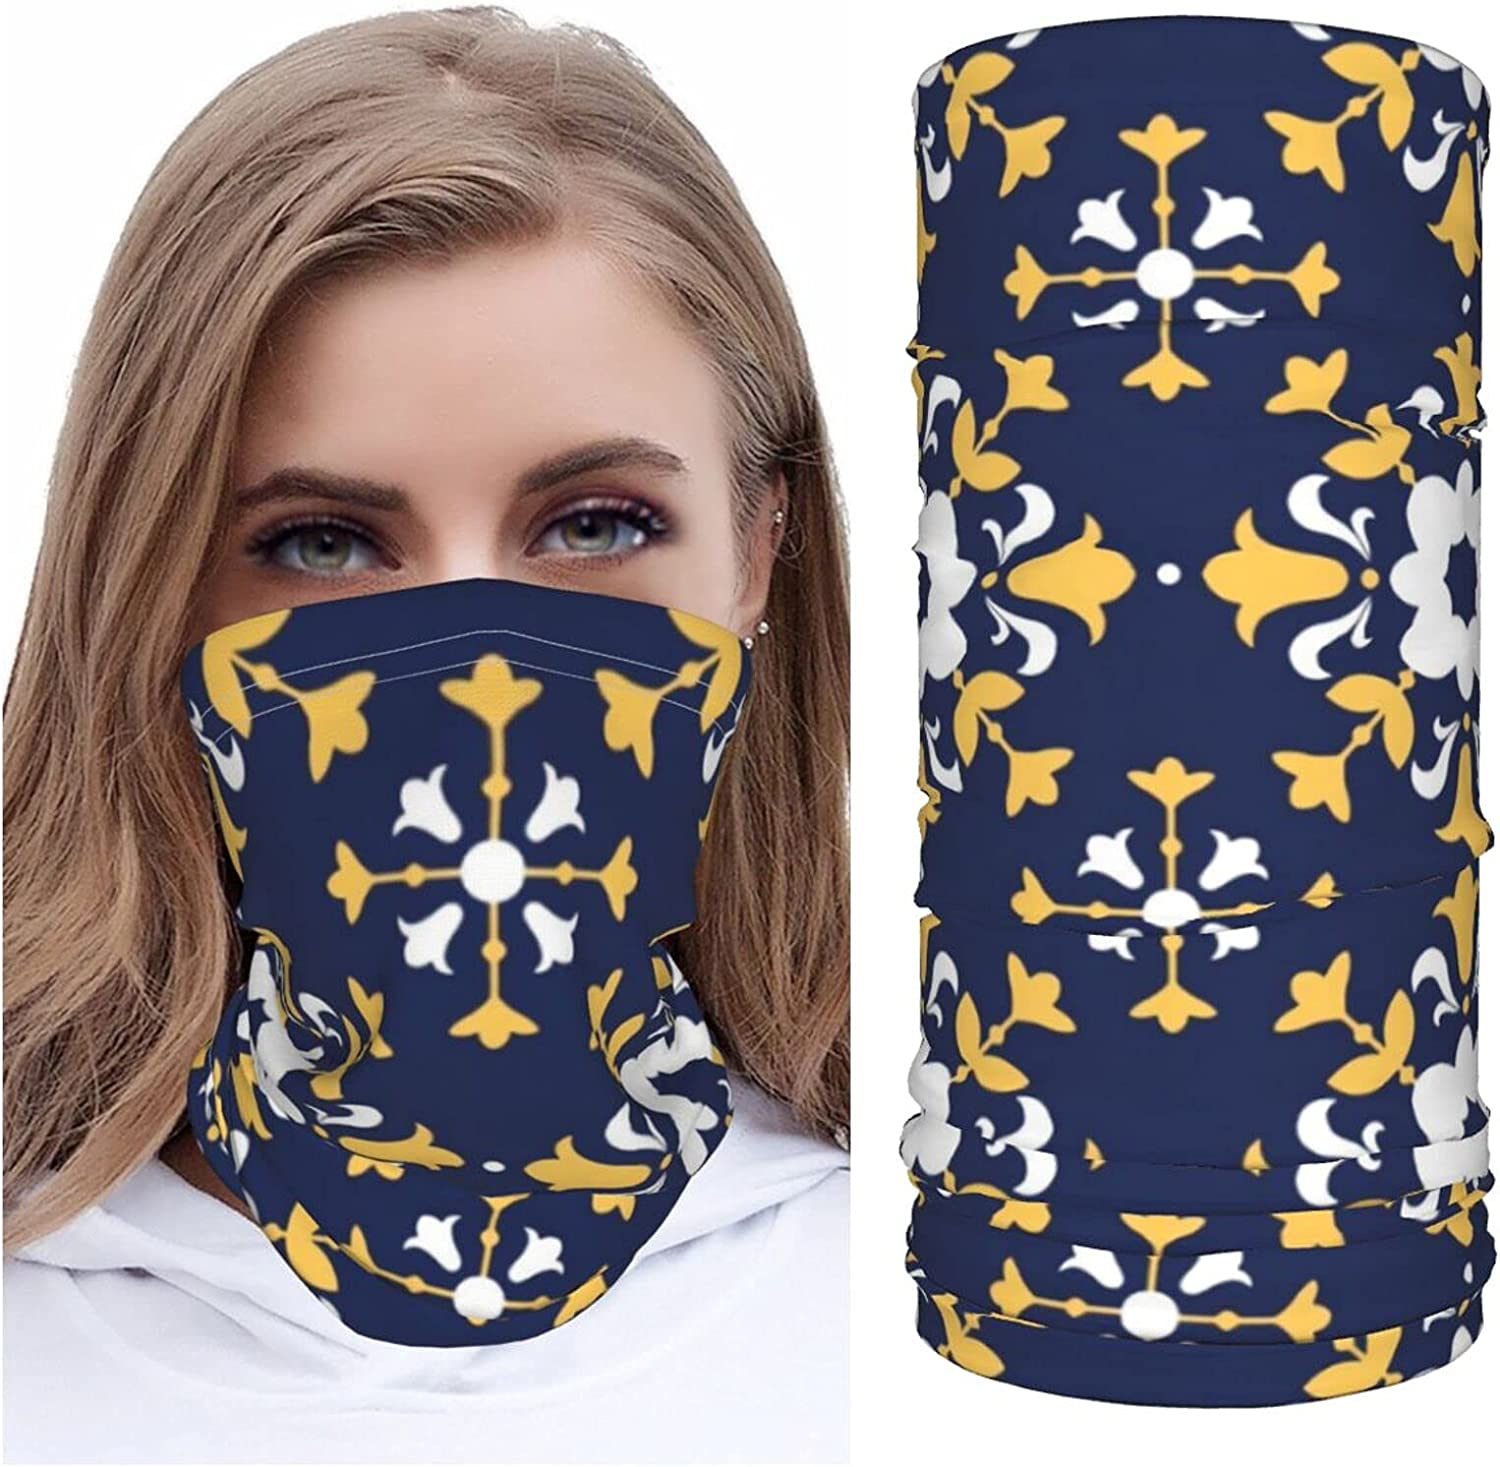 Portugal Moroccan Style2 Neck Gaiter Multipurpose Headwear Ice Silk Mask Scarf Summer Cool Breathable Outdoor Sport 4 Pcs